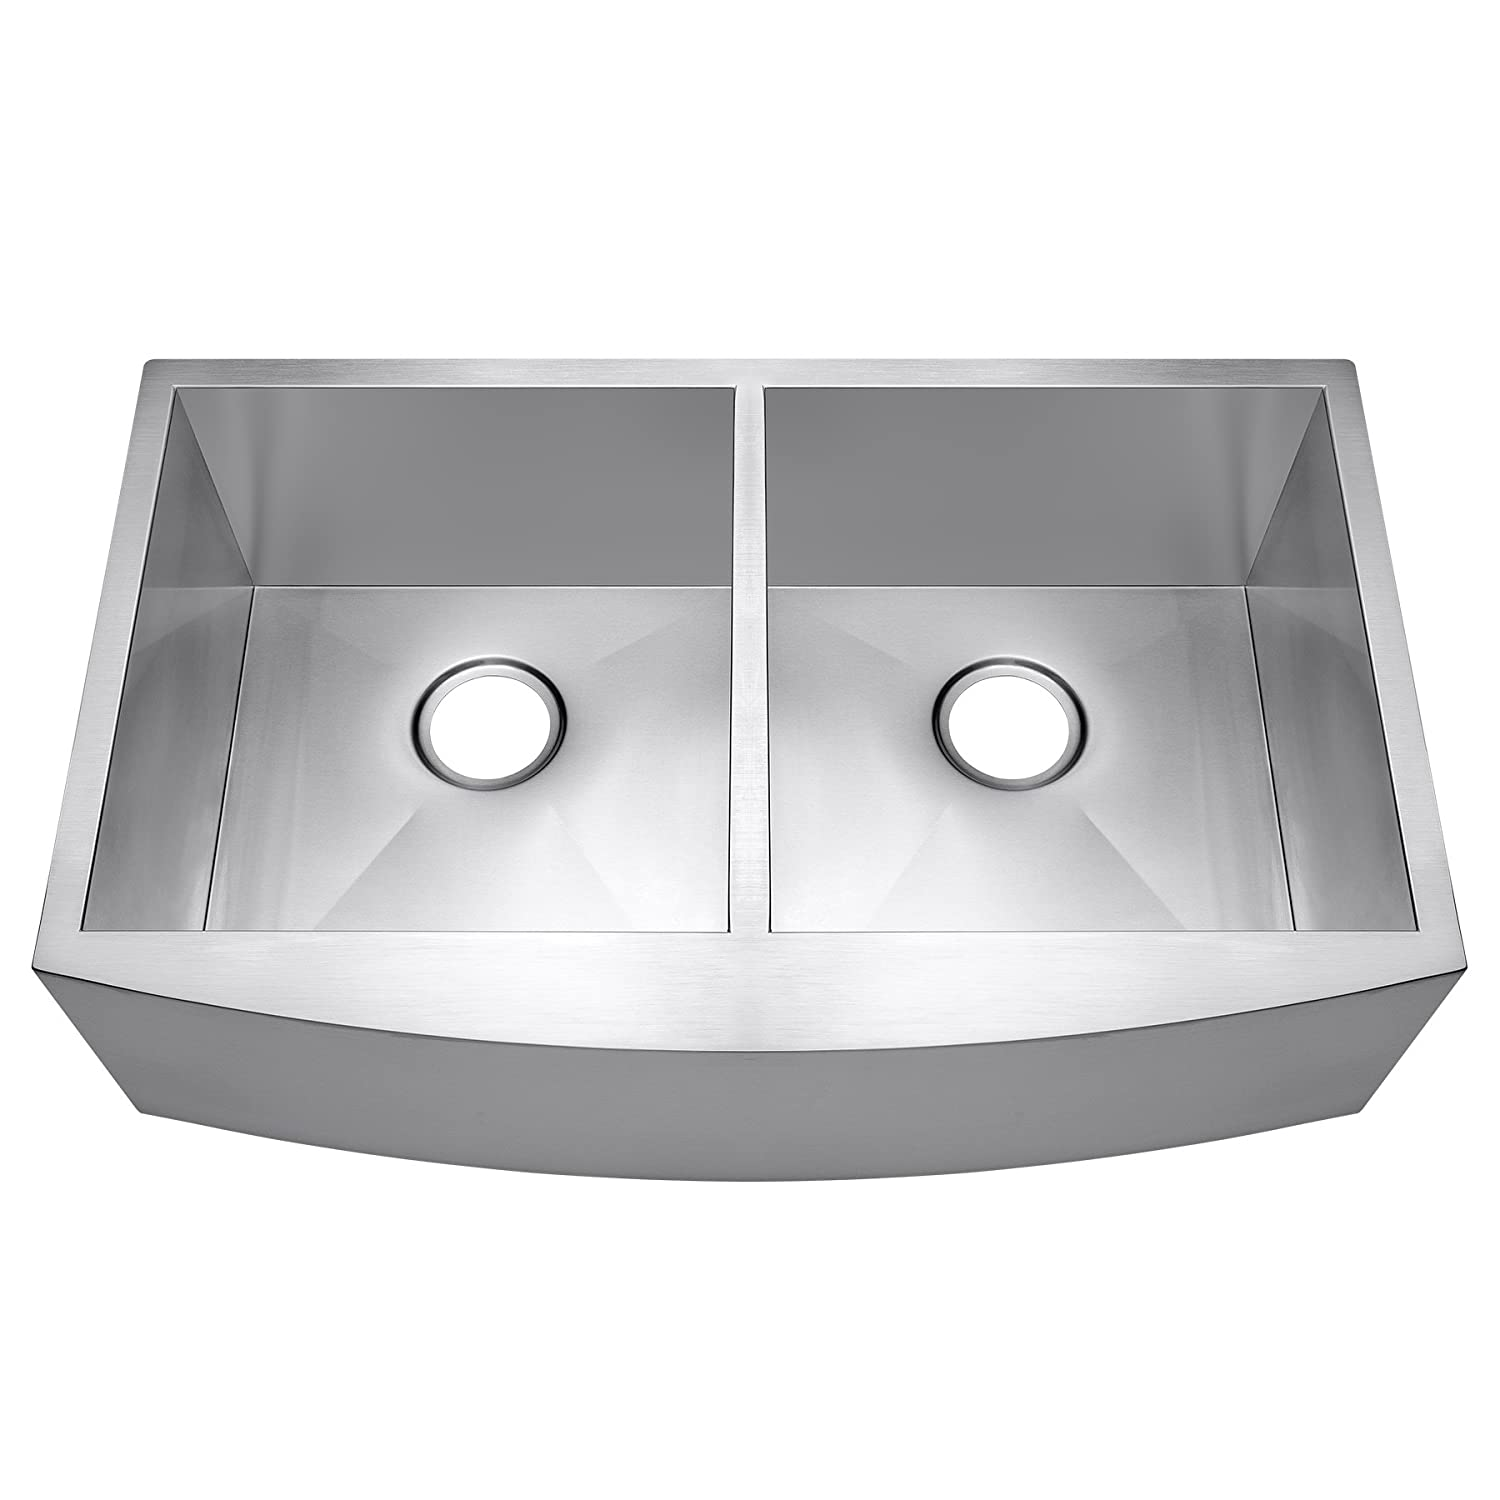 akdy 33   x 20   x 9   undermount apron double bowls basin 18 gauge handmade stainless steel farmhouse kitchen sink     amazon com akdy 33   x 20   x 9   undermount apron double bowls basin 18 gauge      rh   amazon com